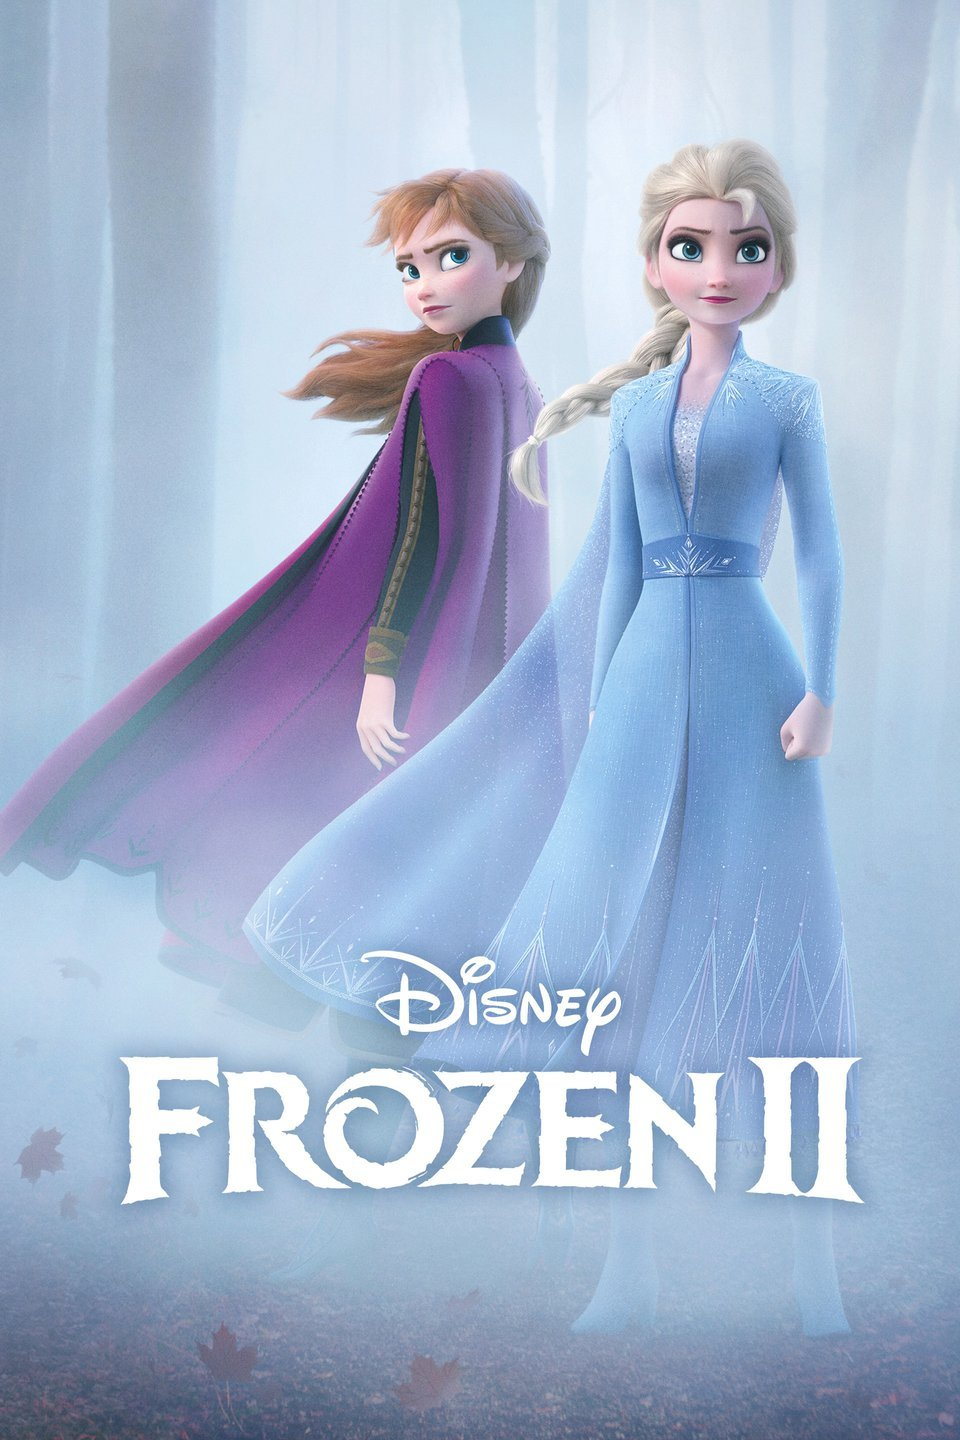 Image result for director of frozen 2